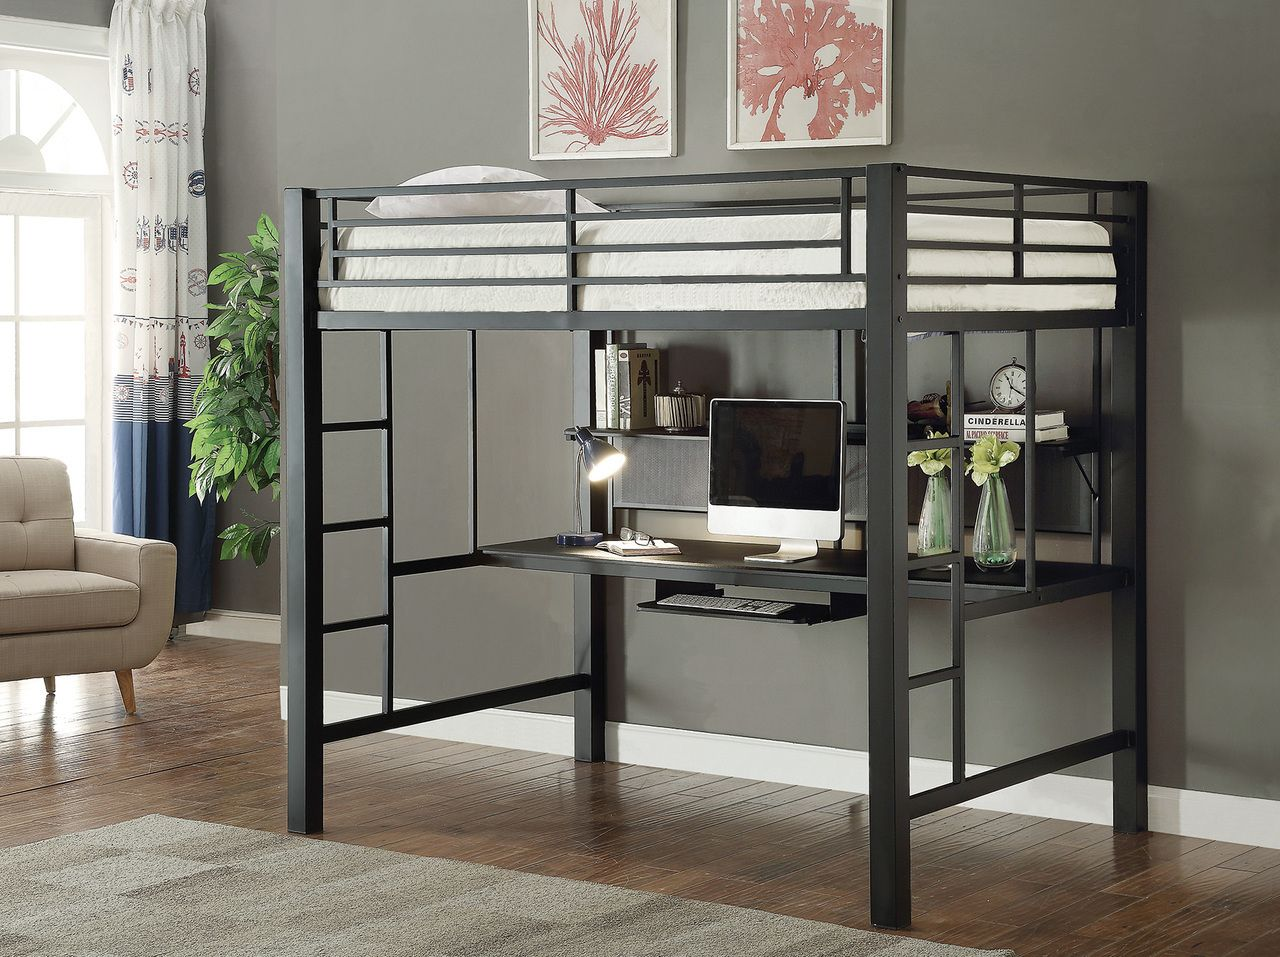 Coaster Home Furnishings Avalon Full Workstation Loft Bed Black